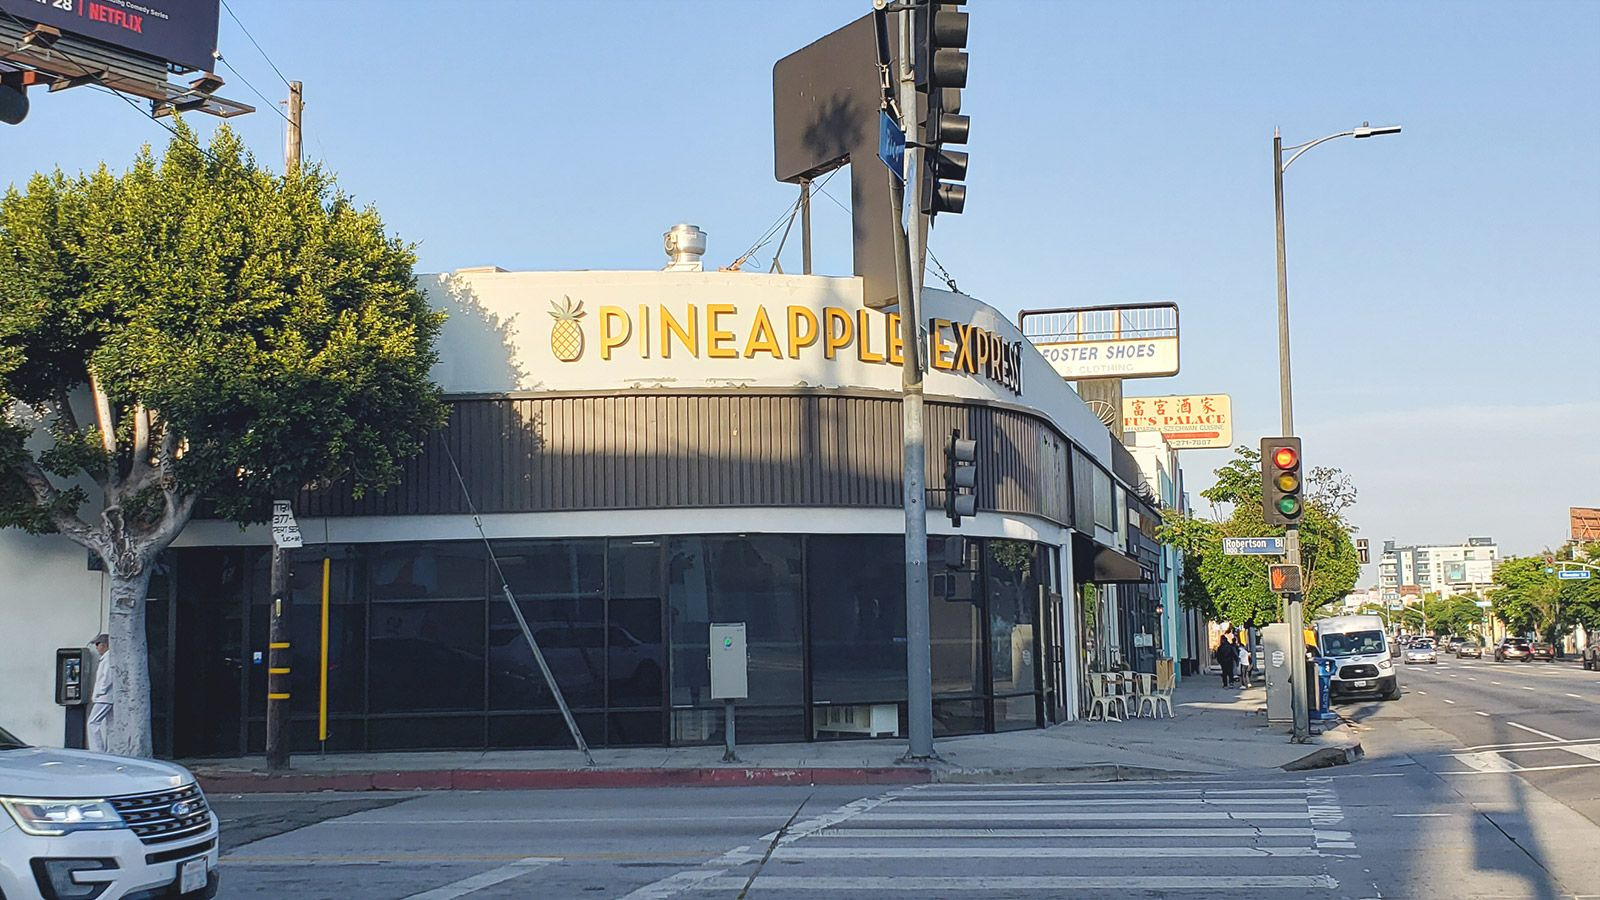 Pineapple express building sign